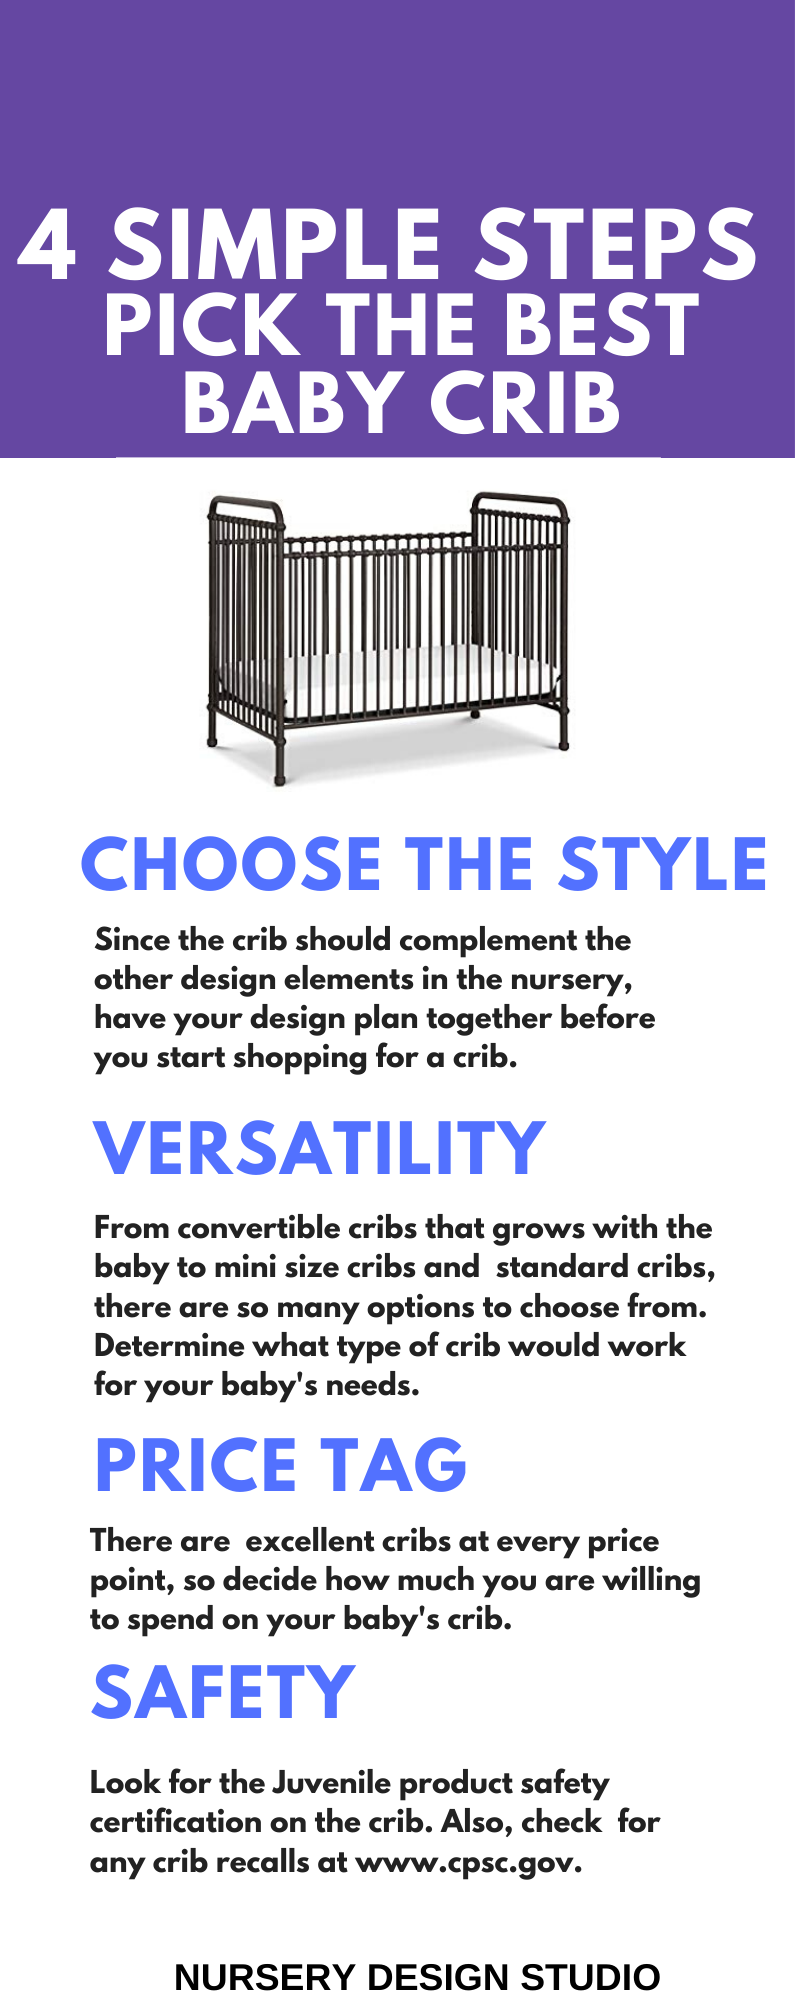 HOW TO CHOOSE THE BEST CRIB